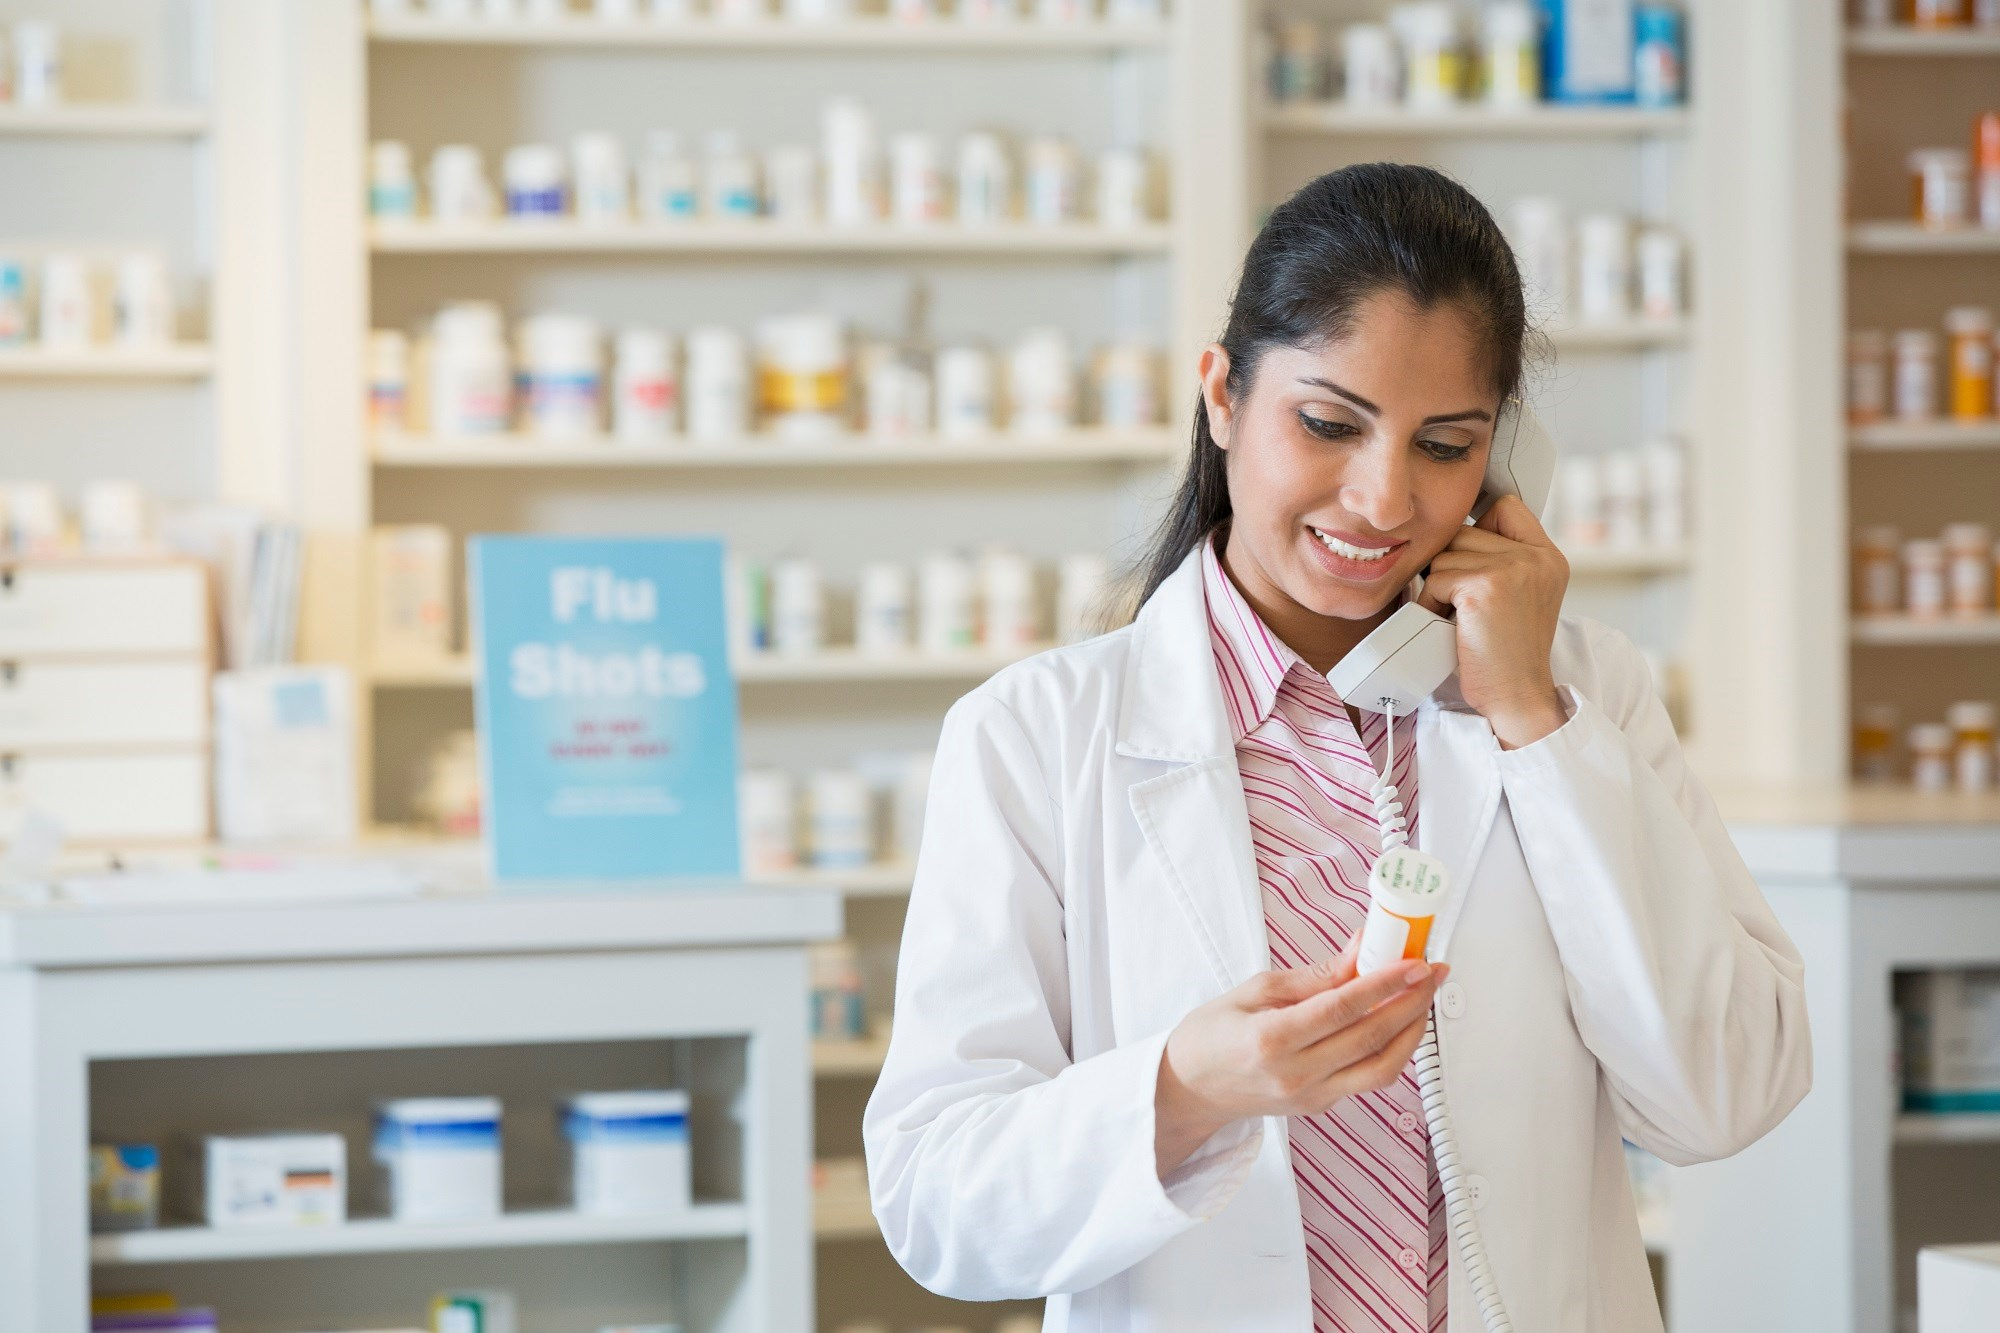 A pharmacist-led, postdischarge structured telephone follow-up intervention can reduce 30-day and 90-day readmission rates for polypharmacy patients.